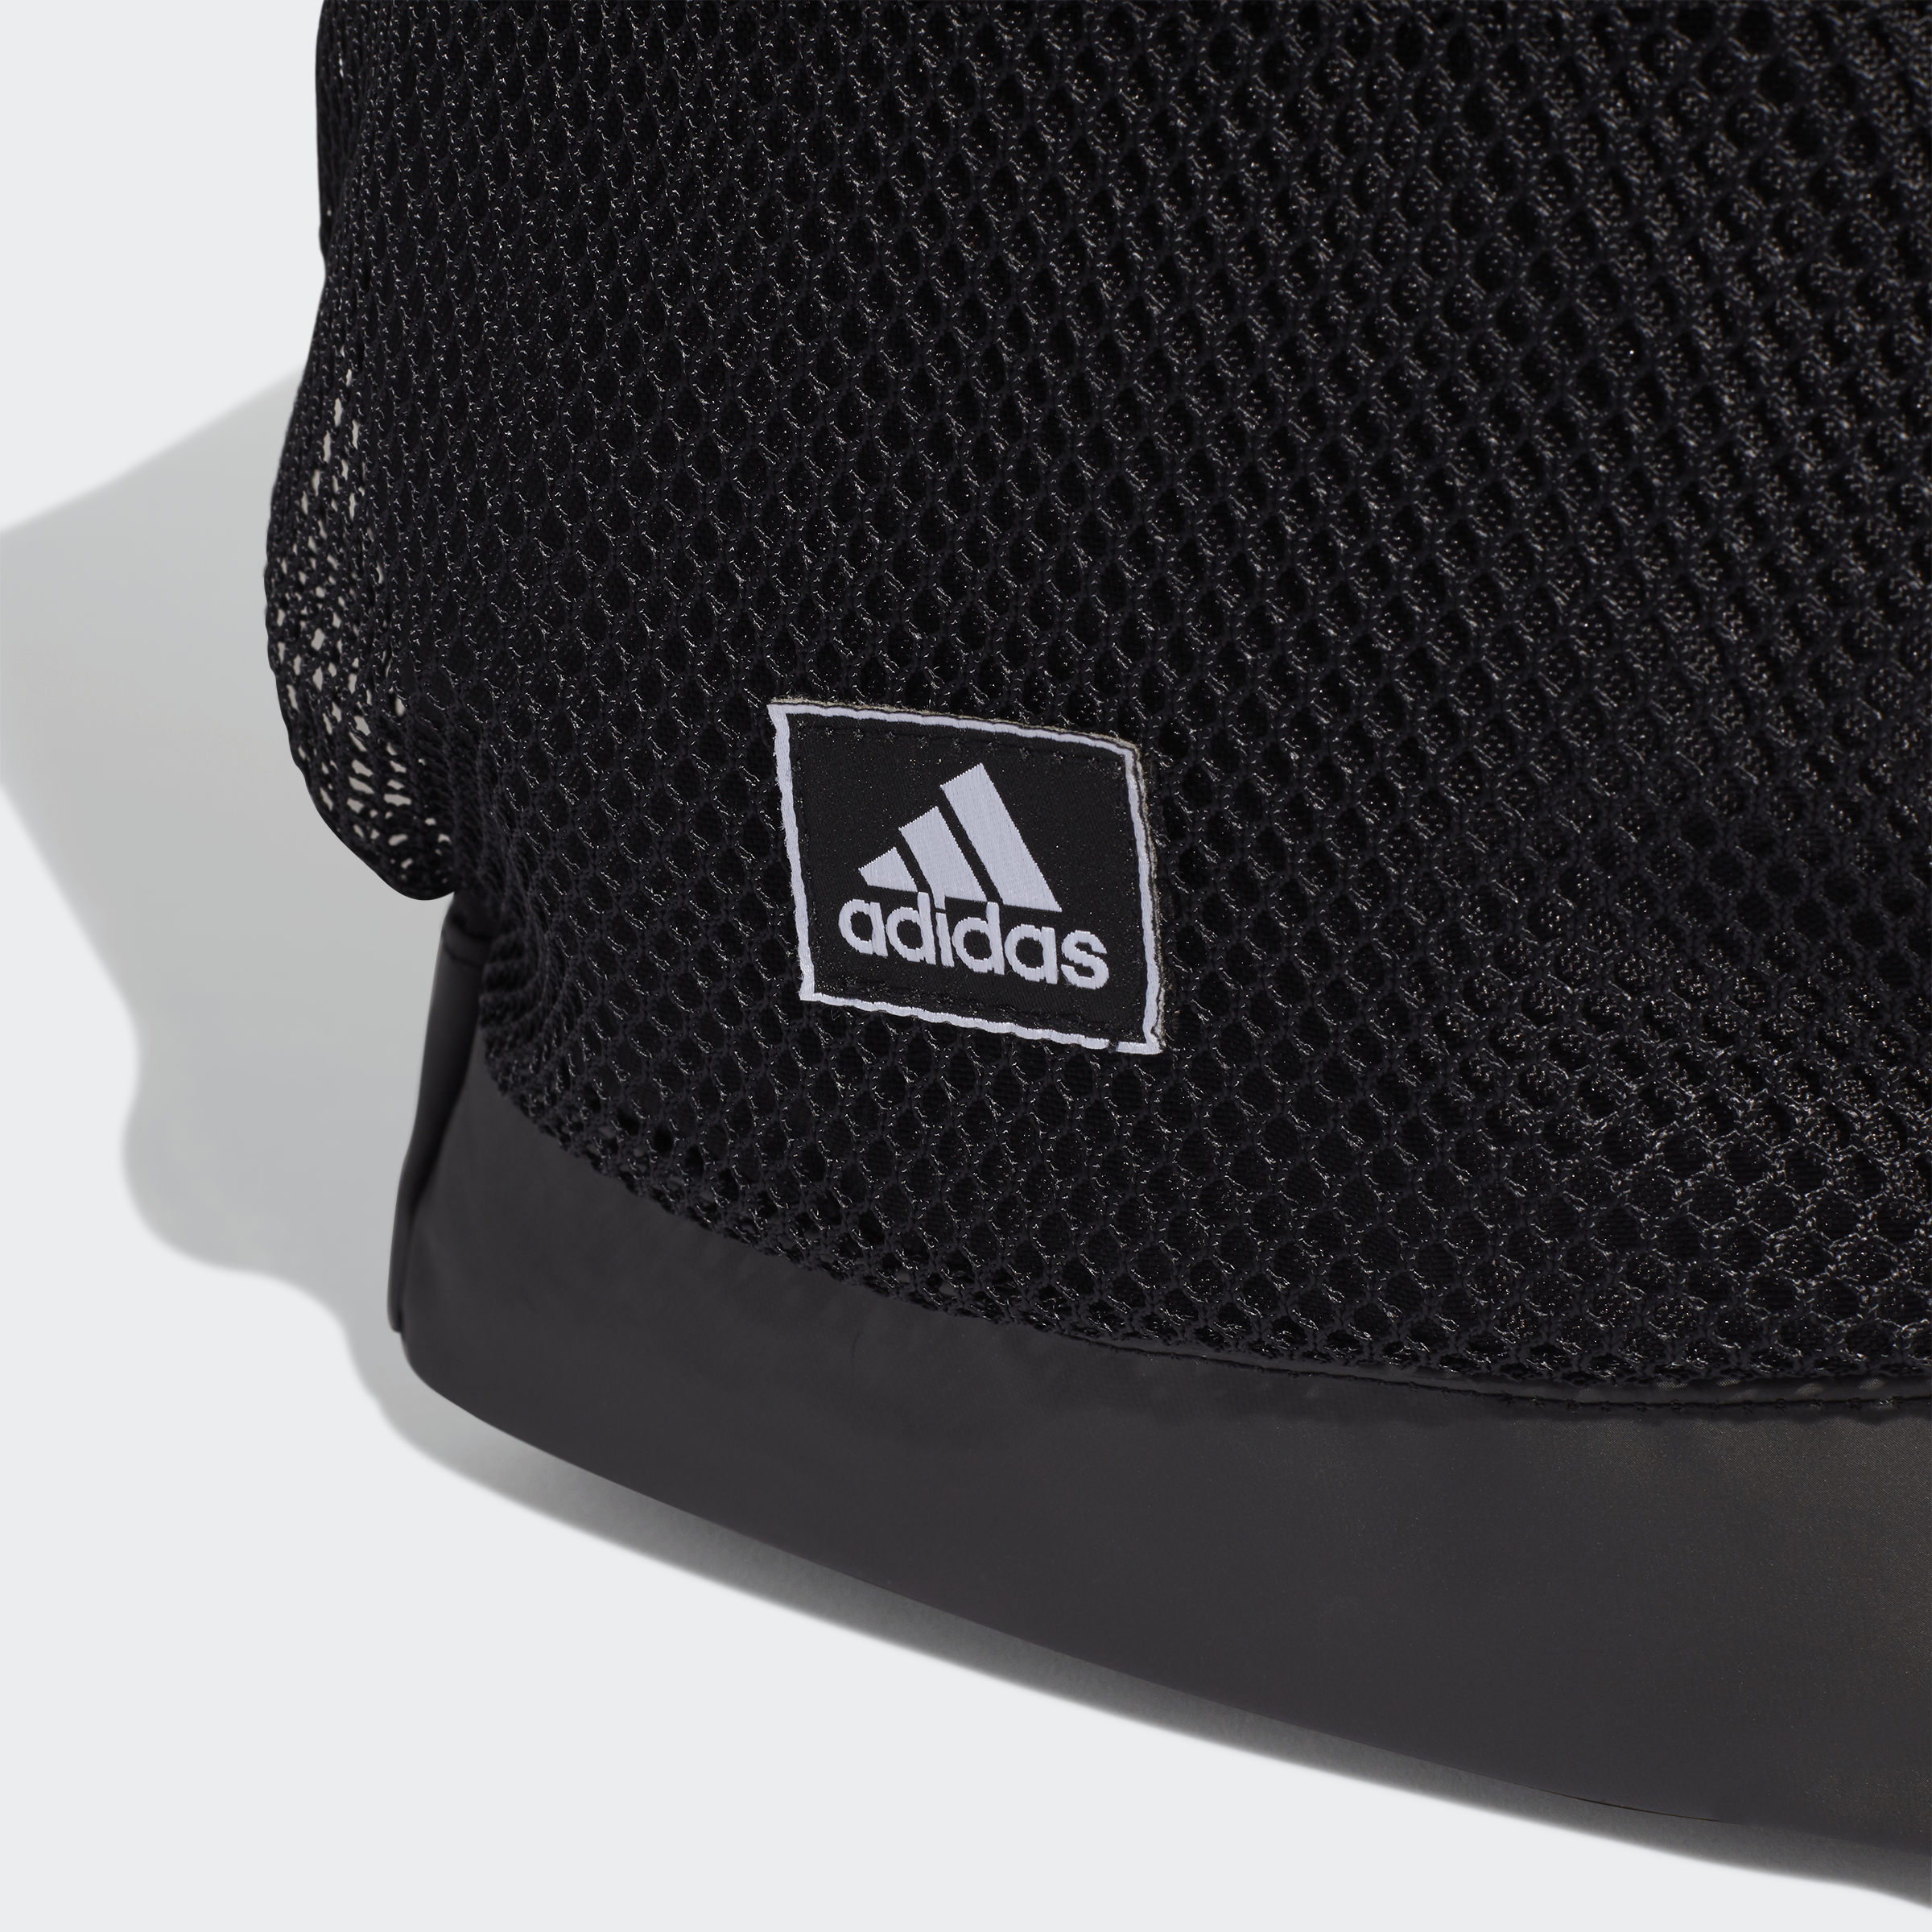 adidas-Classic-3-Stripes-Backpack-Bags thumbnail 10